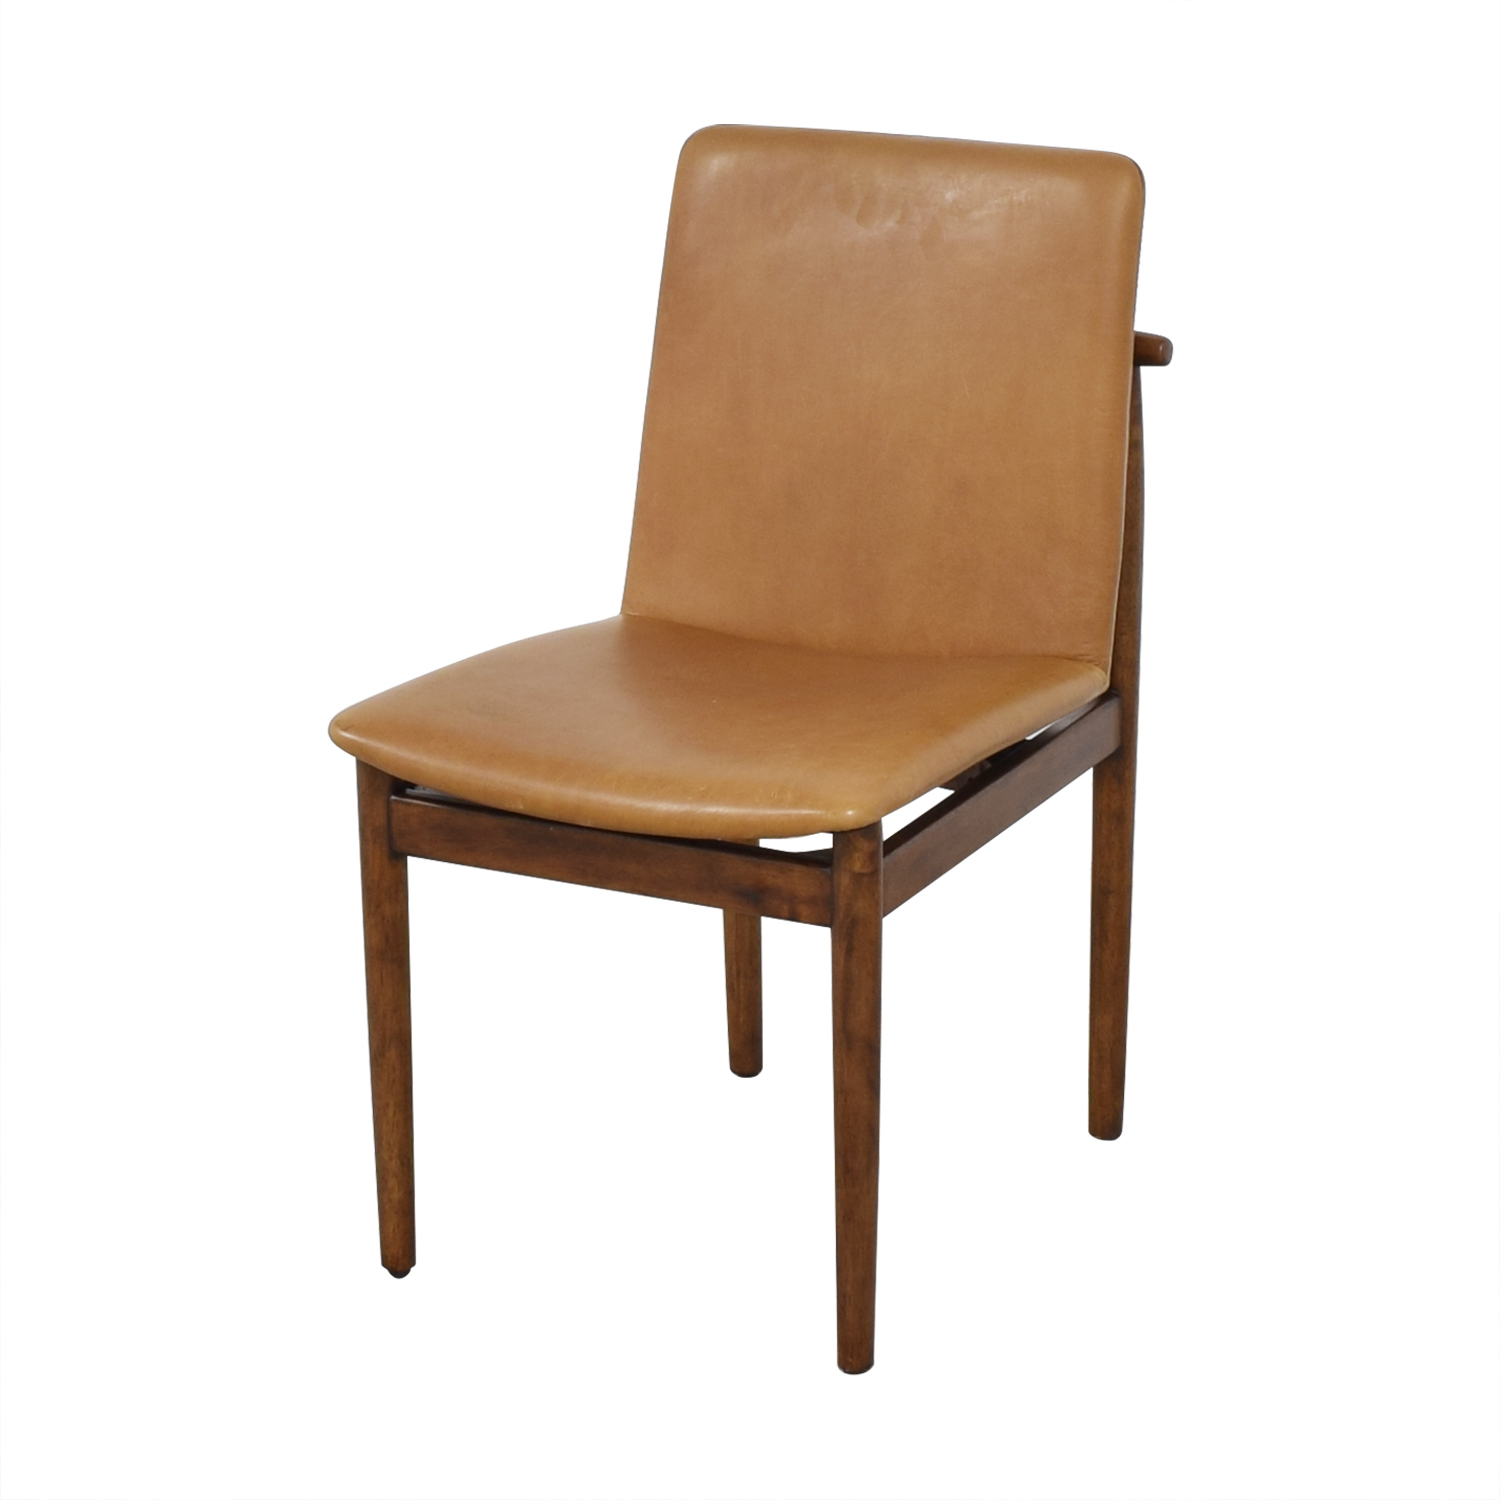 West Elm Framework Leather Dining Chairs / Dining Chairs